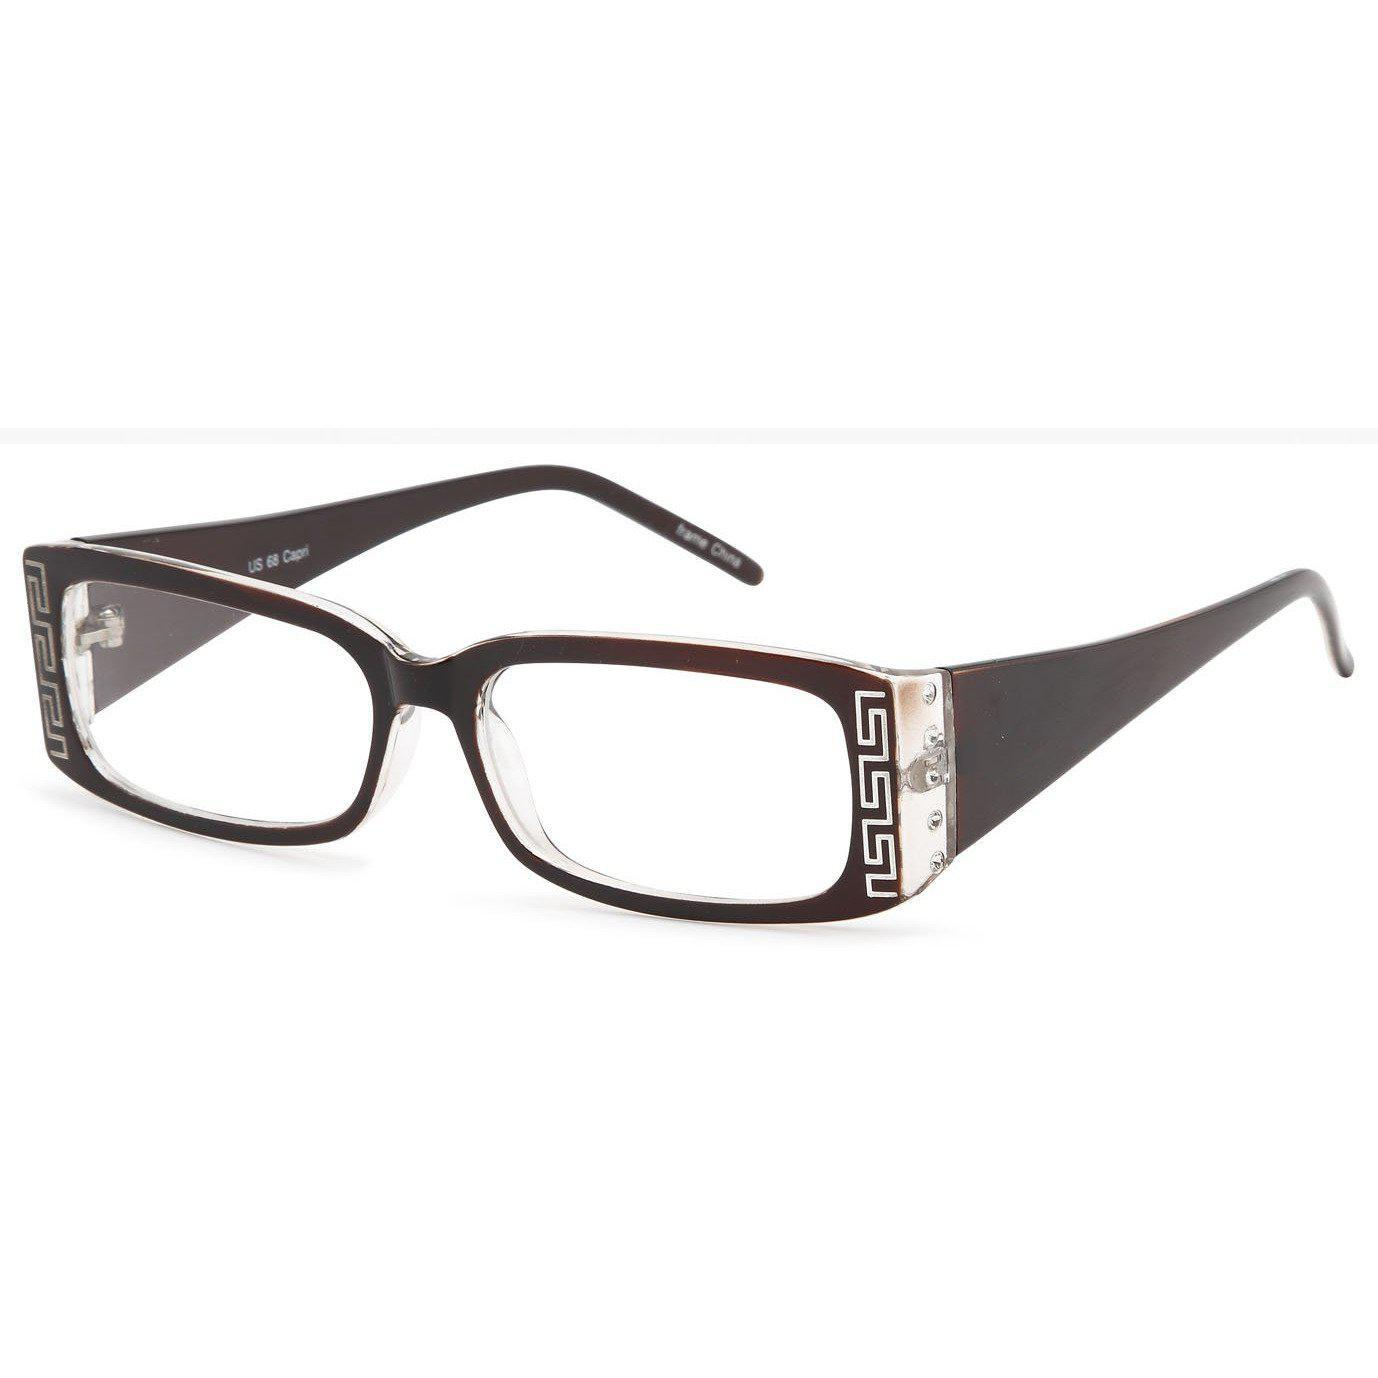 4U Prescription Glasses US 68 Optical Eyeglasses Frame - timetoshade